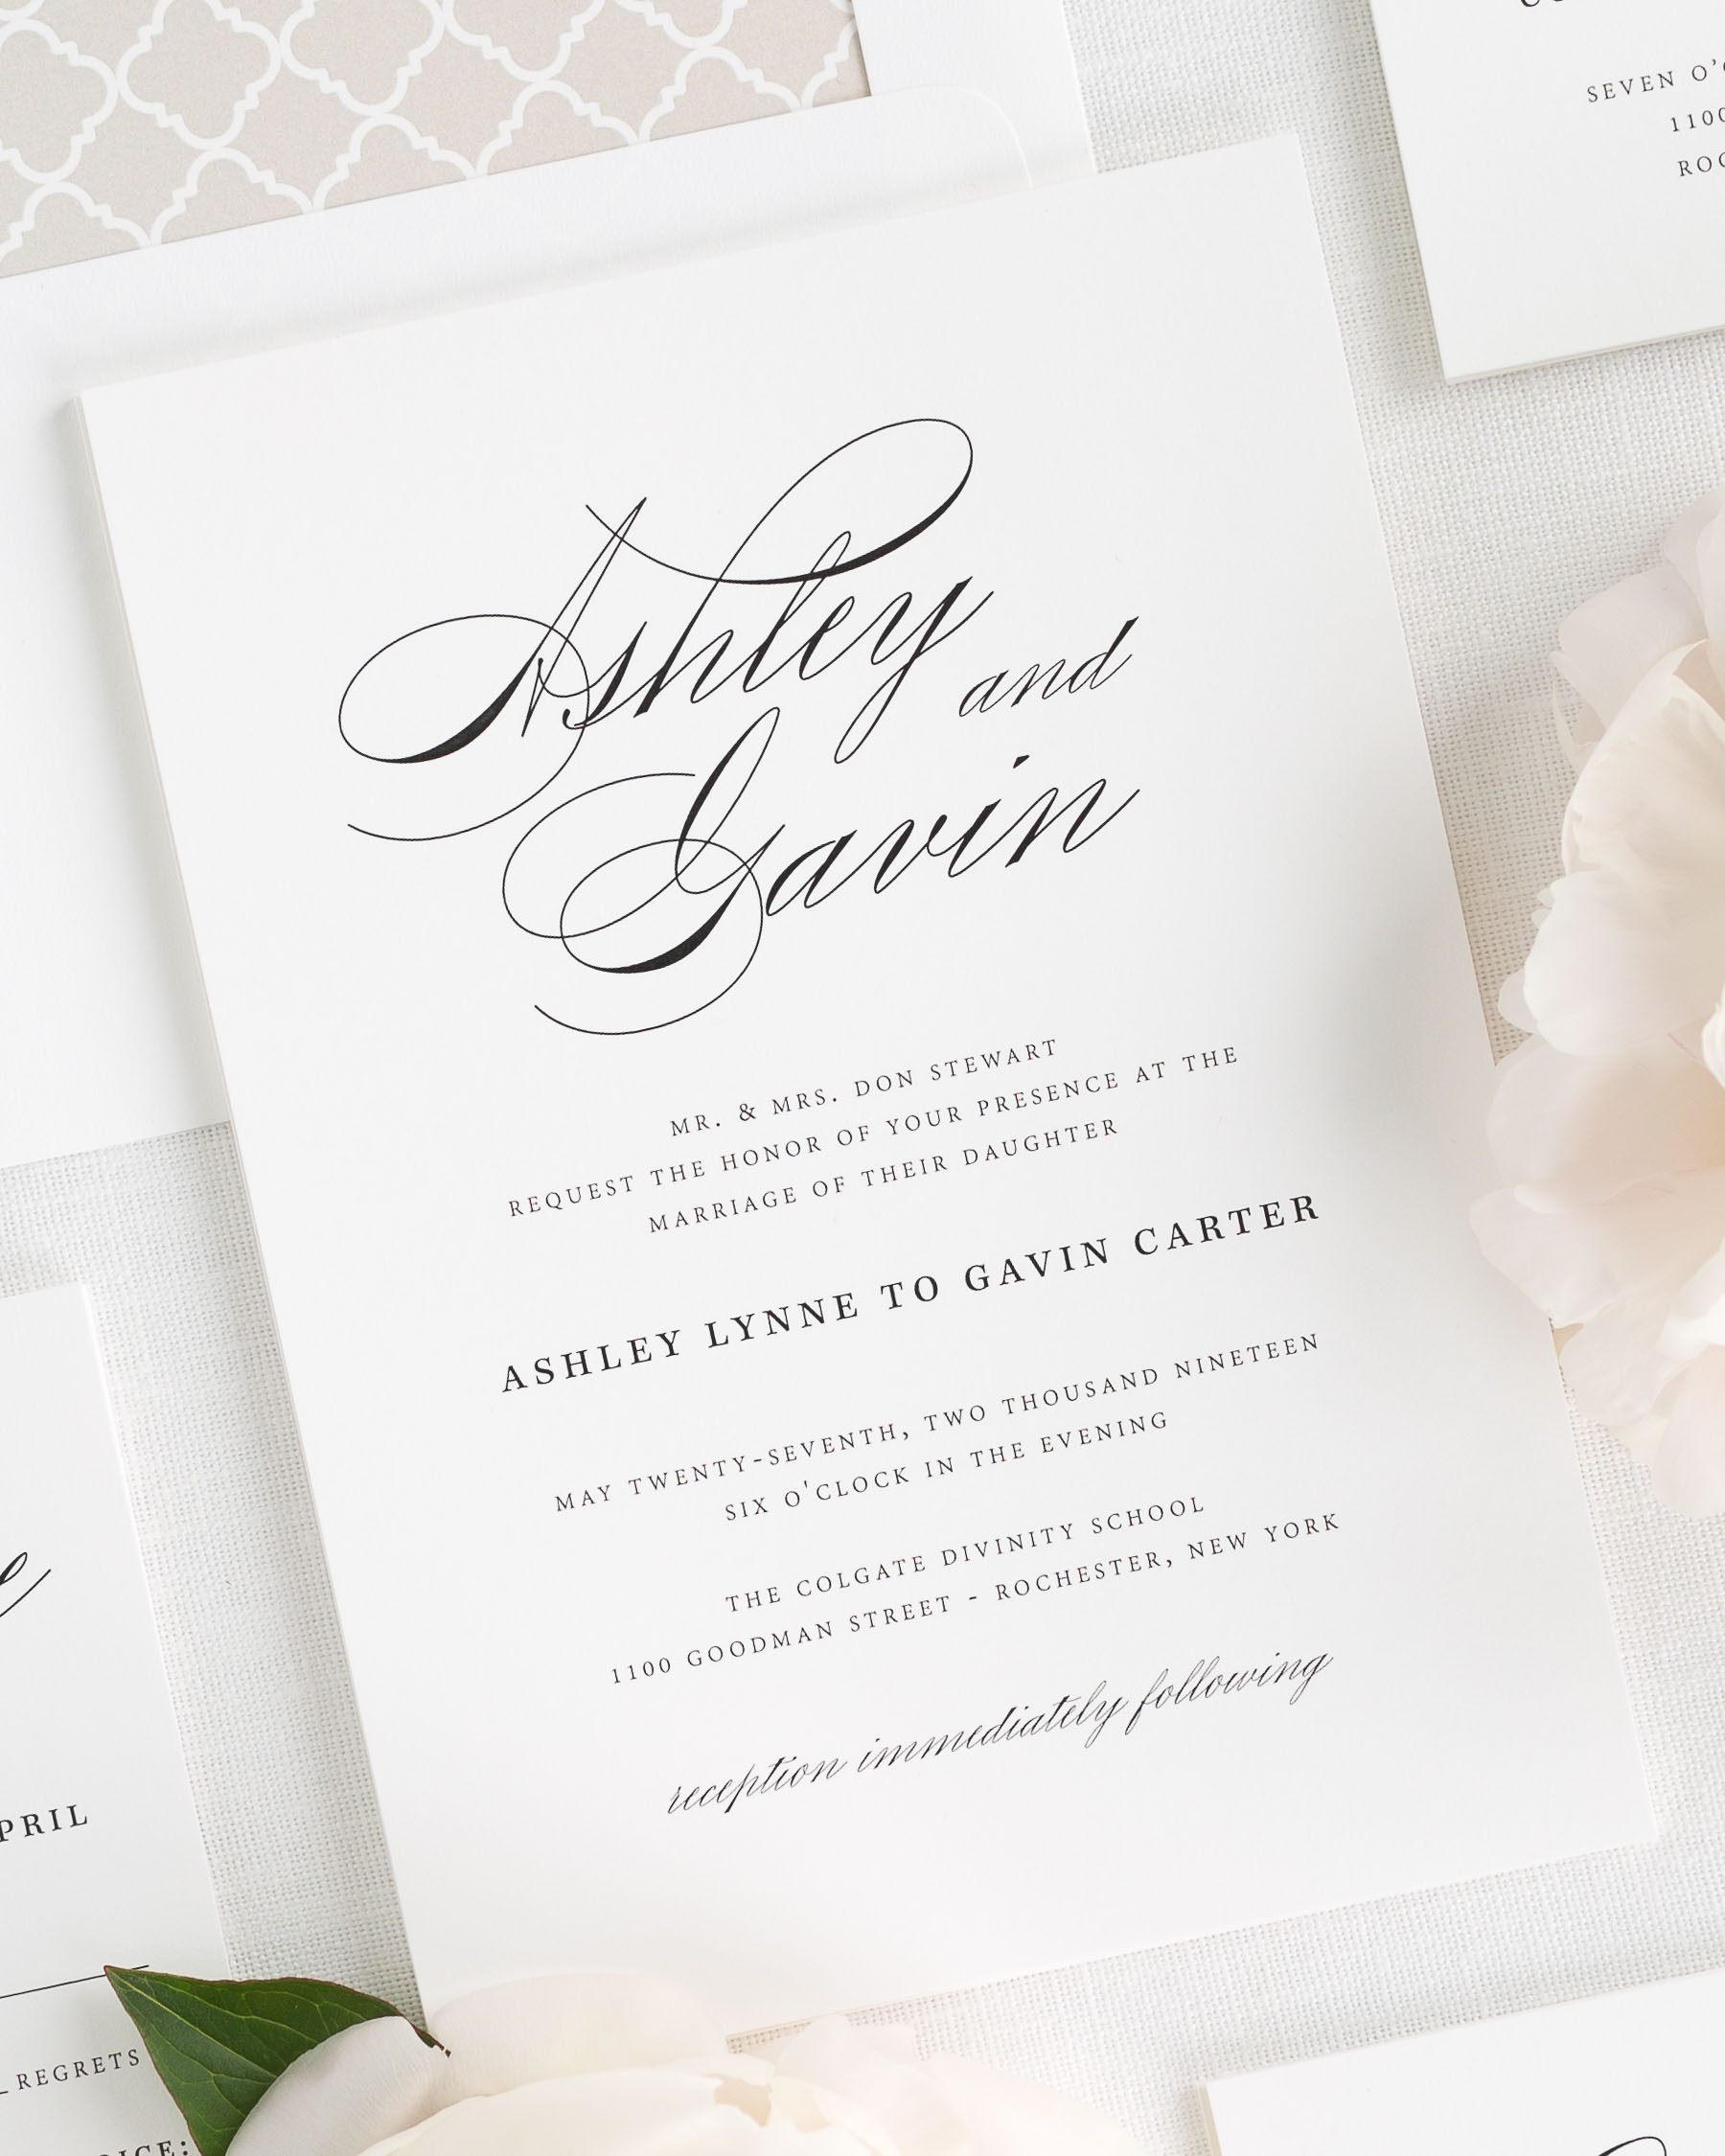 Sample Invitations For Wedding: Timeless Script Wedding Invitations